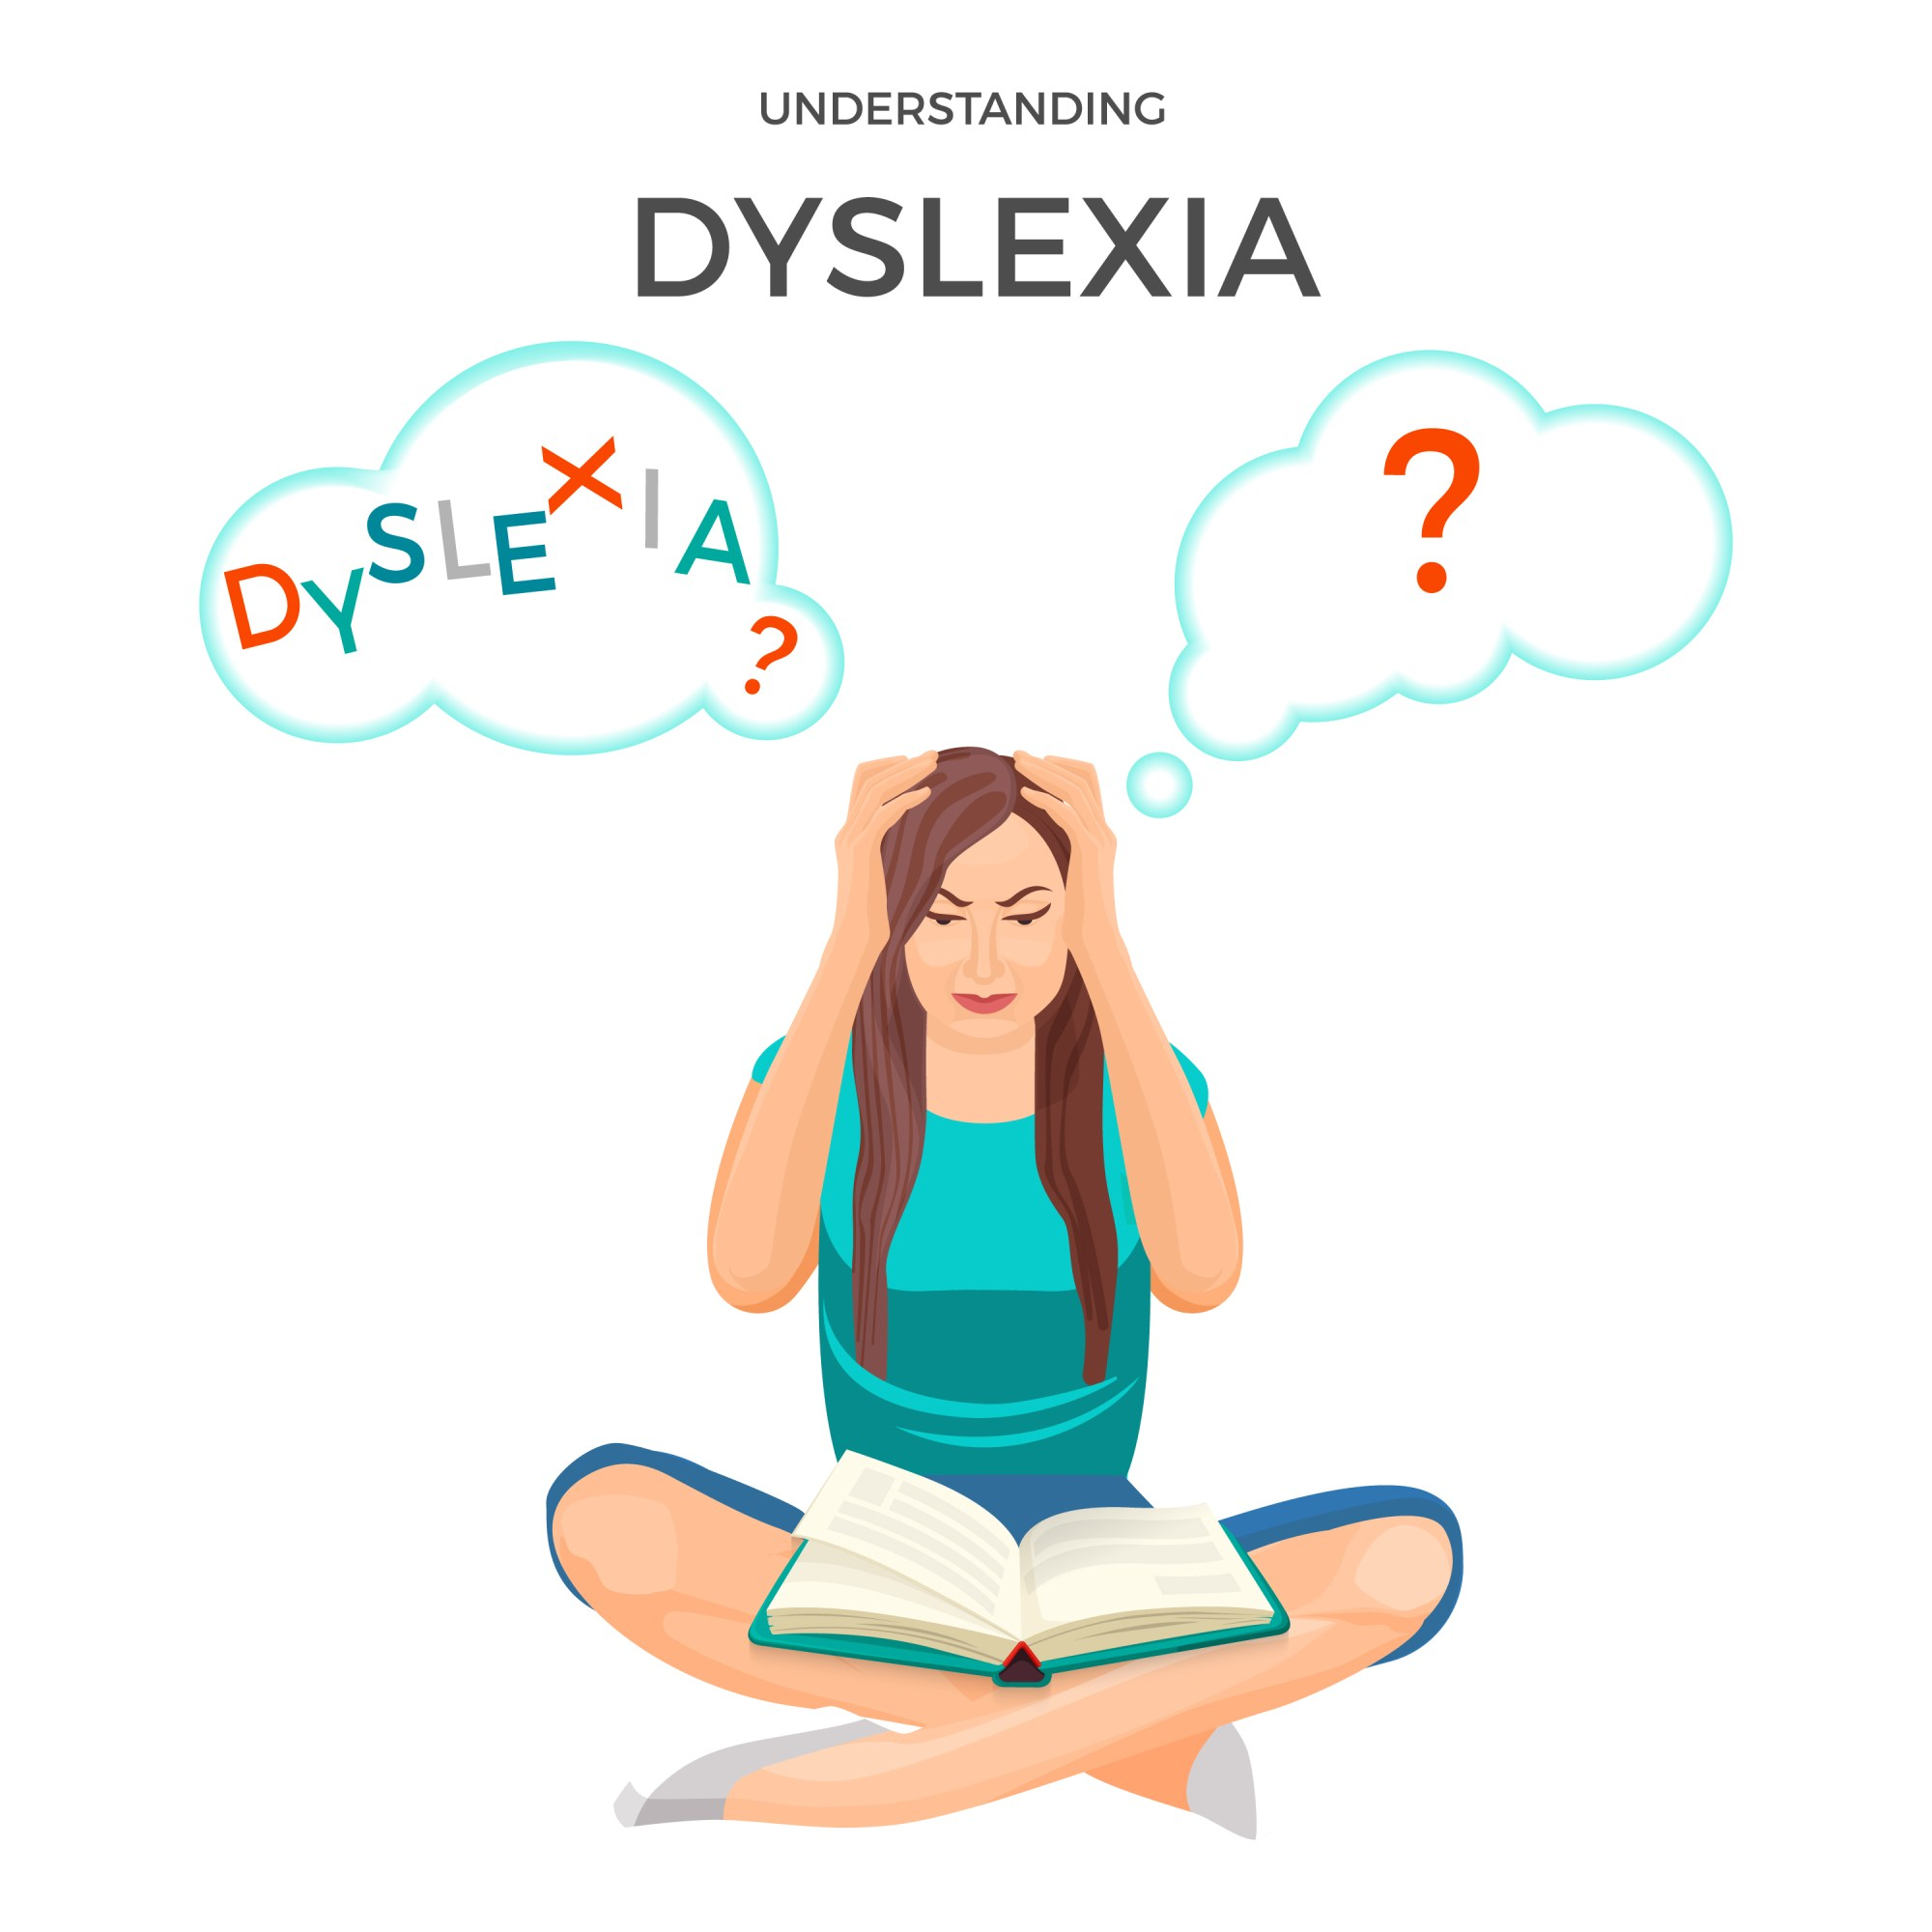 hight resolution of Dyslexia Research \u0026 Overcoming Reading Problems With Strategies - Mrs. Judy  Araujo